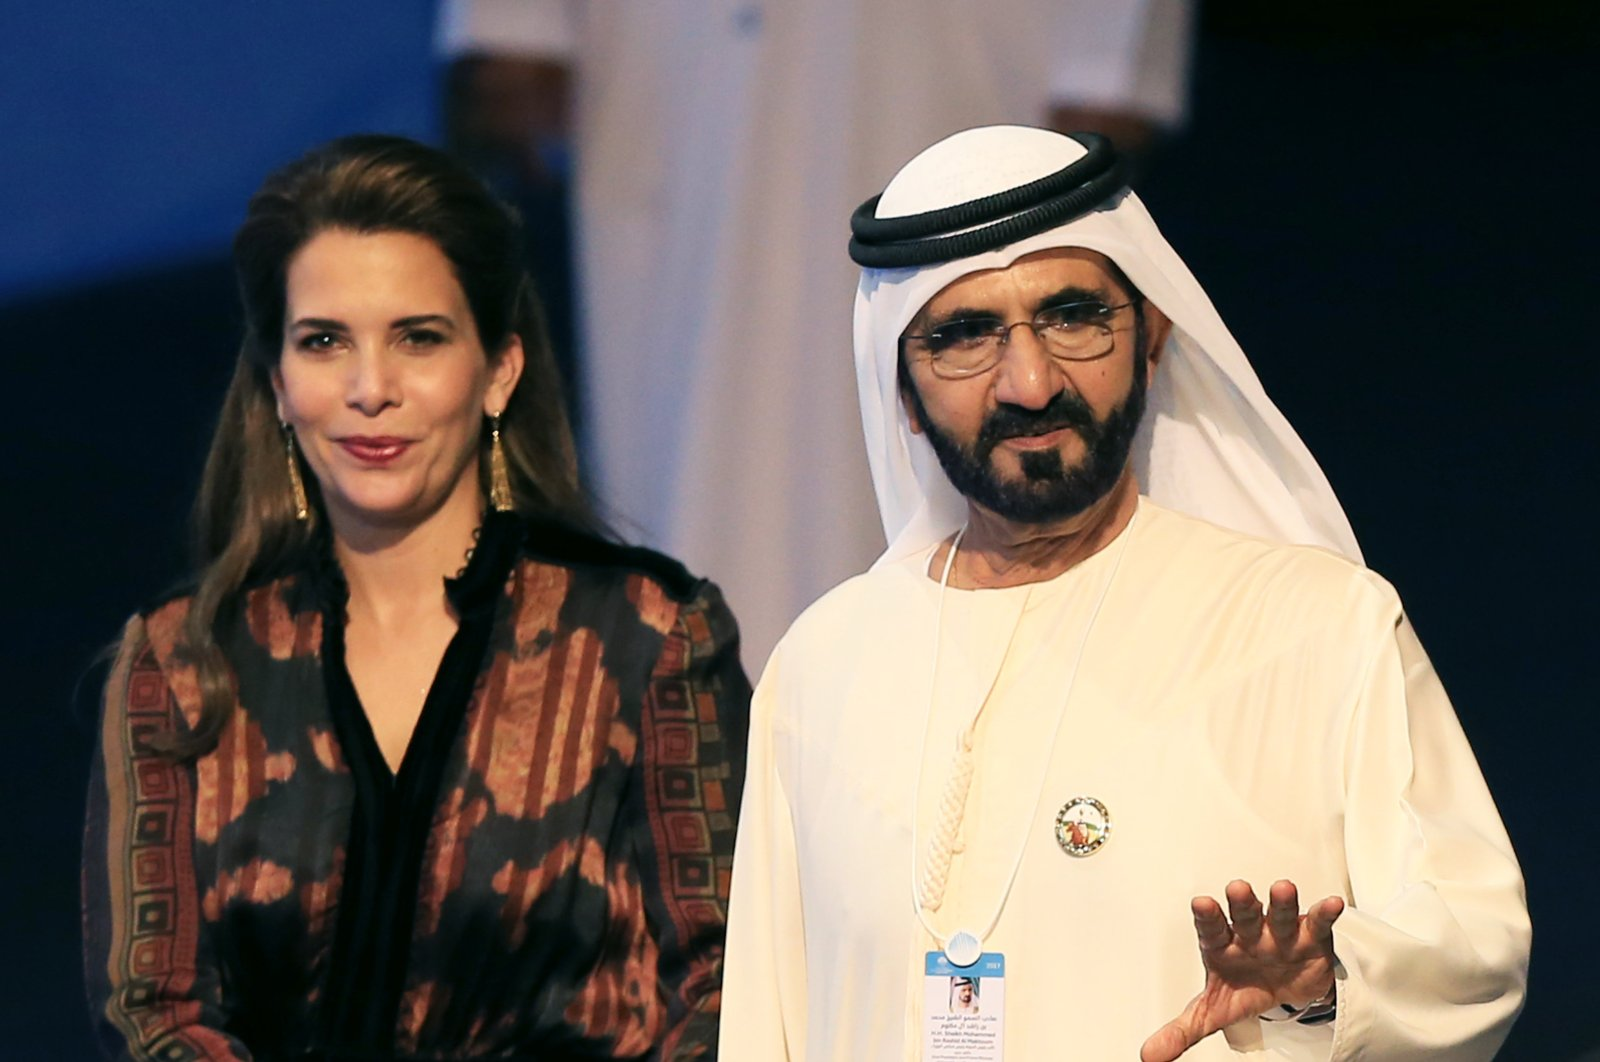 Sheikh Mohammed bin Rashid Al Maktoum, Vice President and Prime Minister of the UAE and Ruler of Dubai arrives with Princess Haya bint Al Hussein during the World Government Summit 2017 at Madinat Jumeirah in Dubai, United Arab Emirates, 14 February 2017. (EPA Photo)